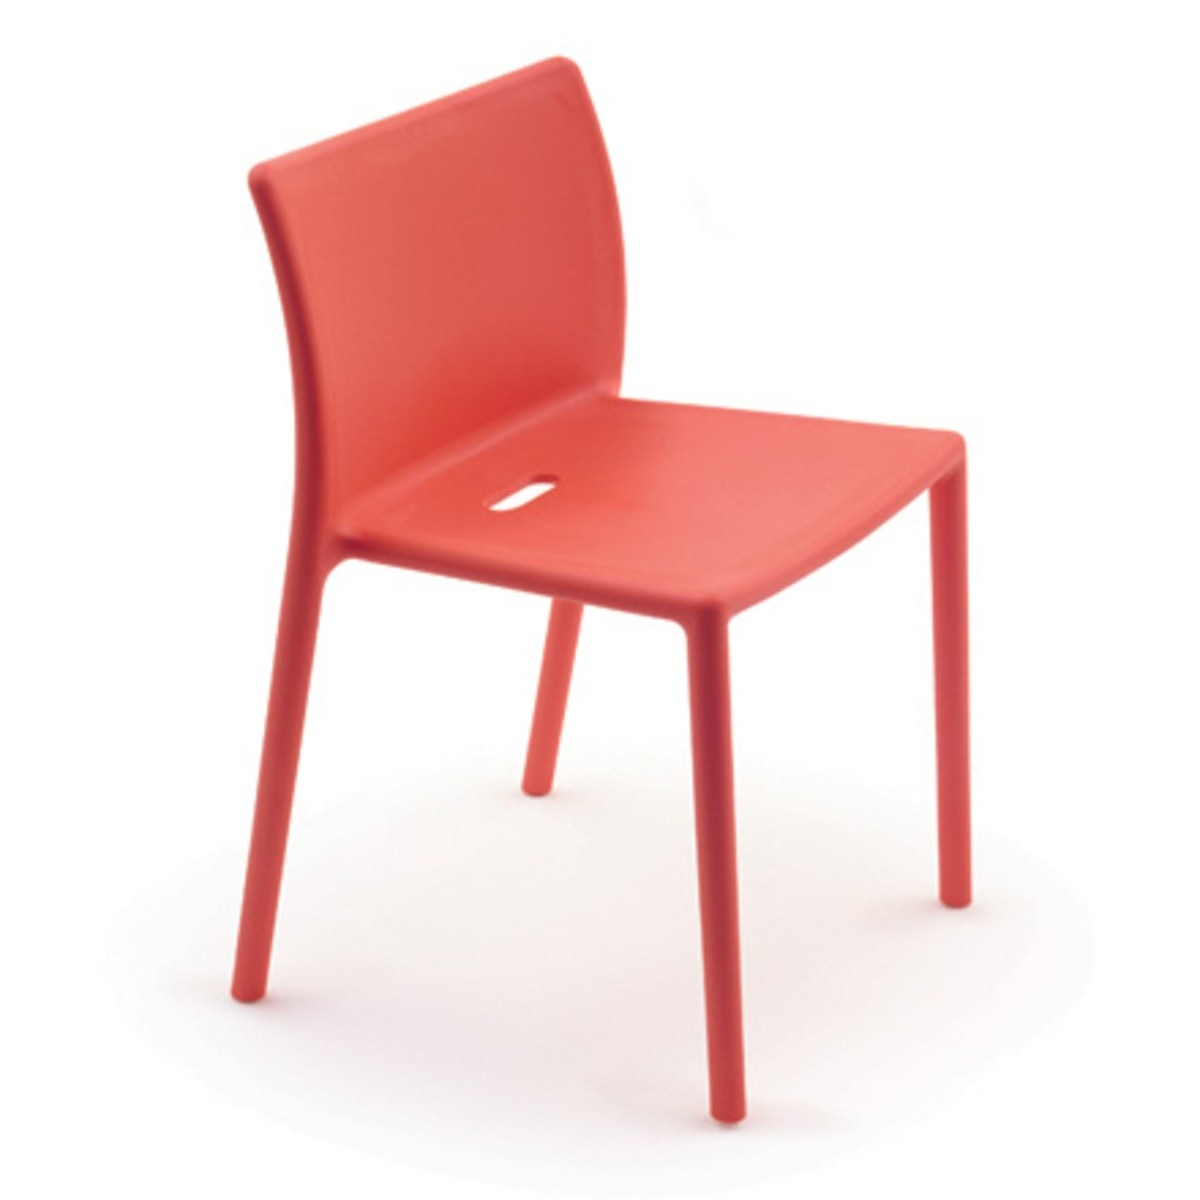 Magis Air Chair Outdoor Sold In Set Of 4 GR Shop Canada